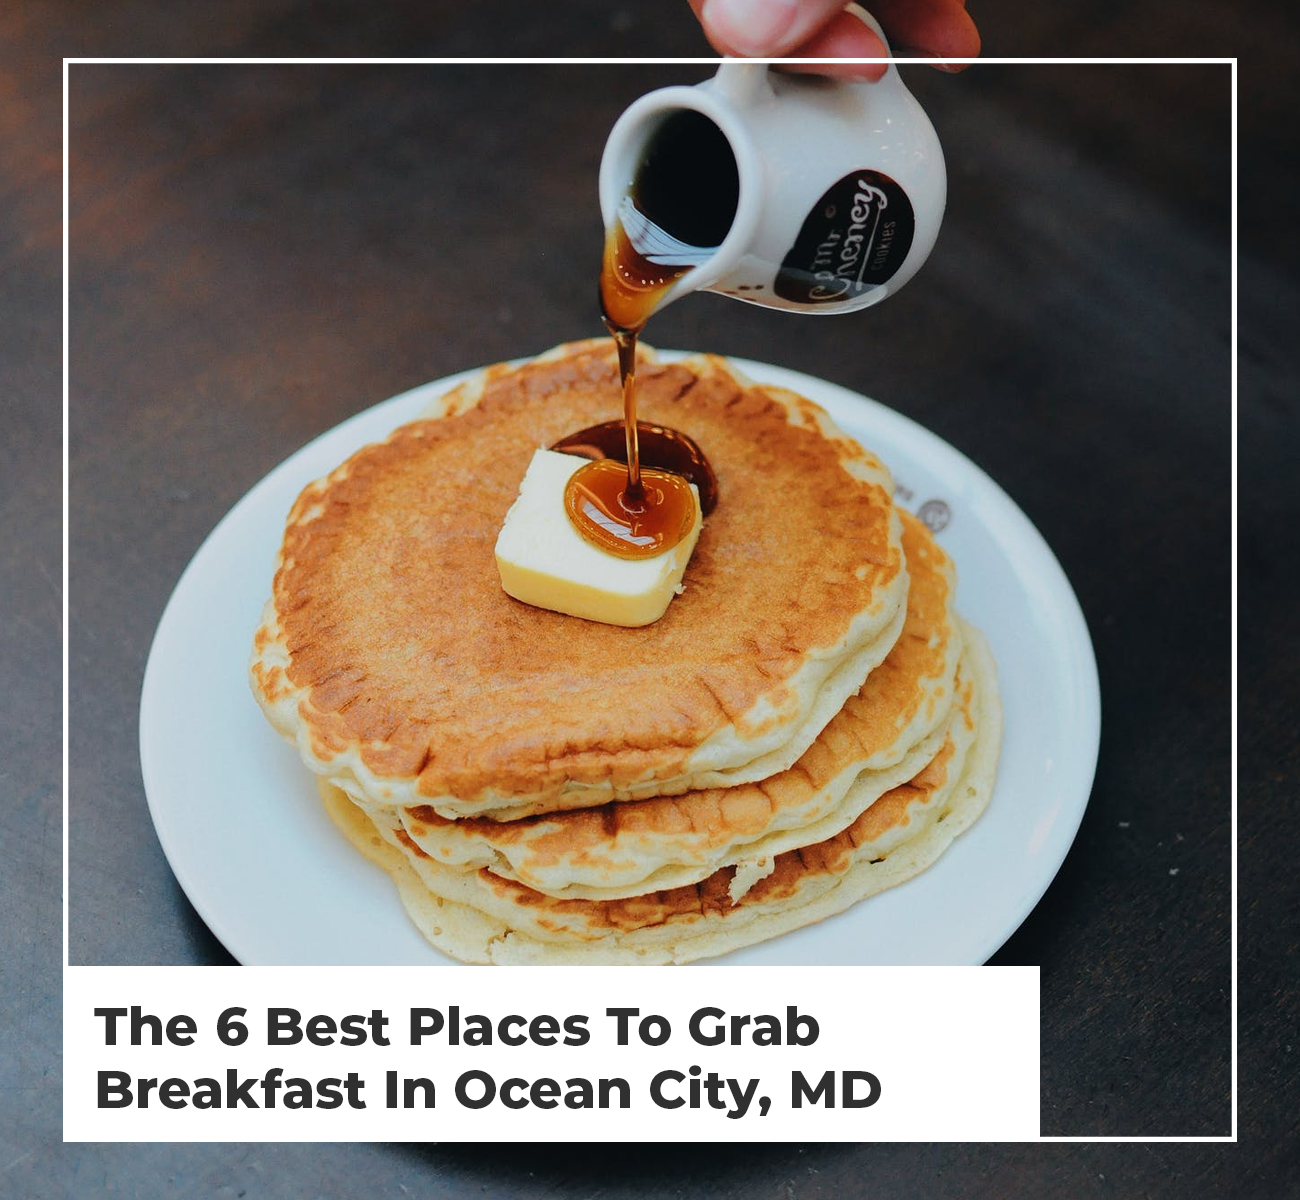 Best Places For Breakfast Ocean City, MD